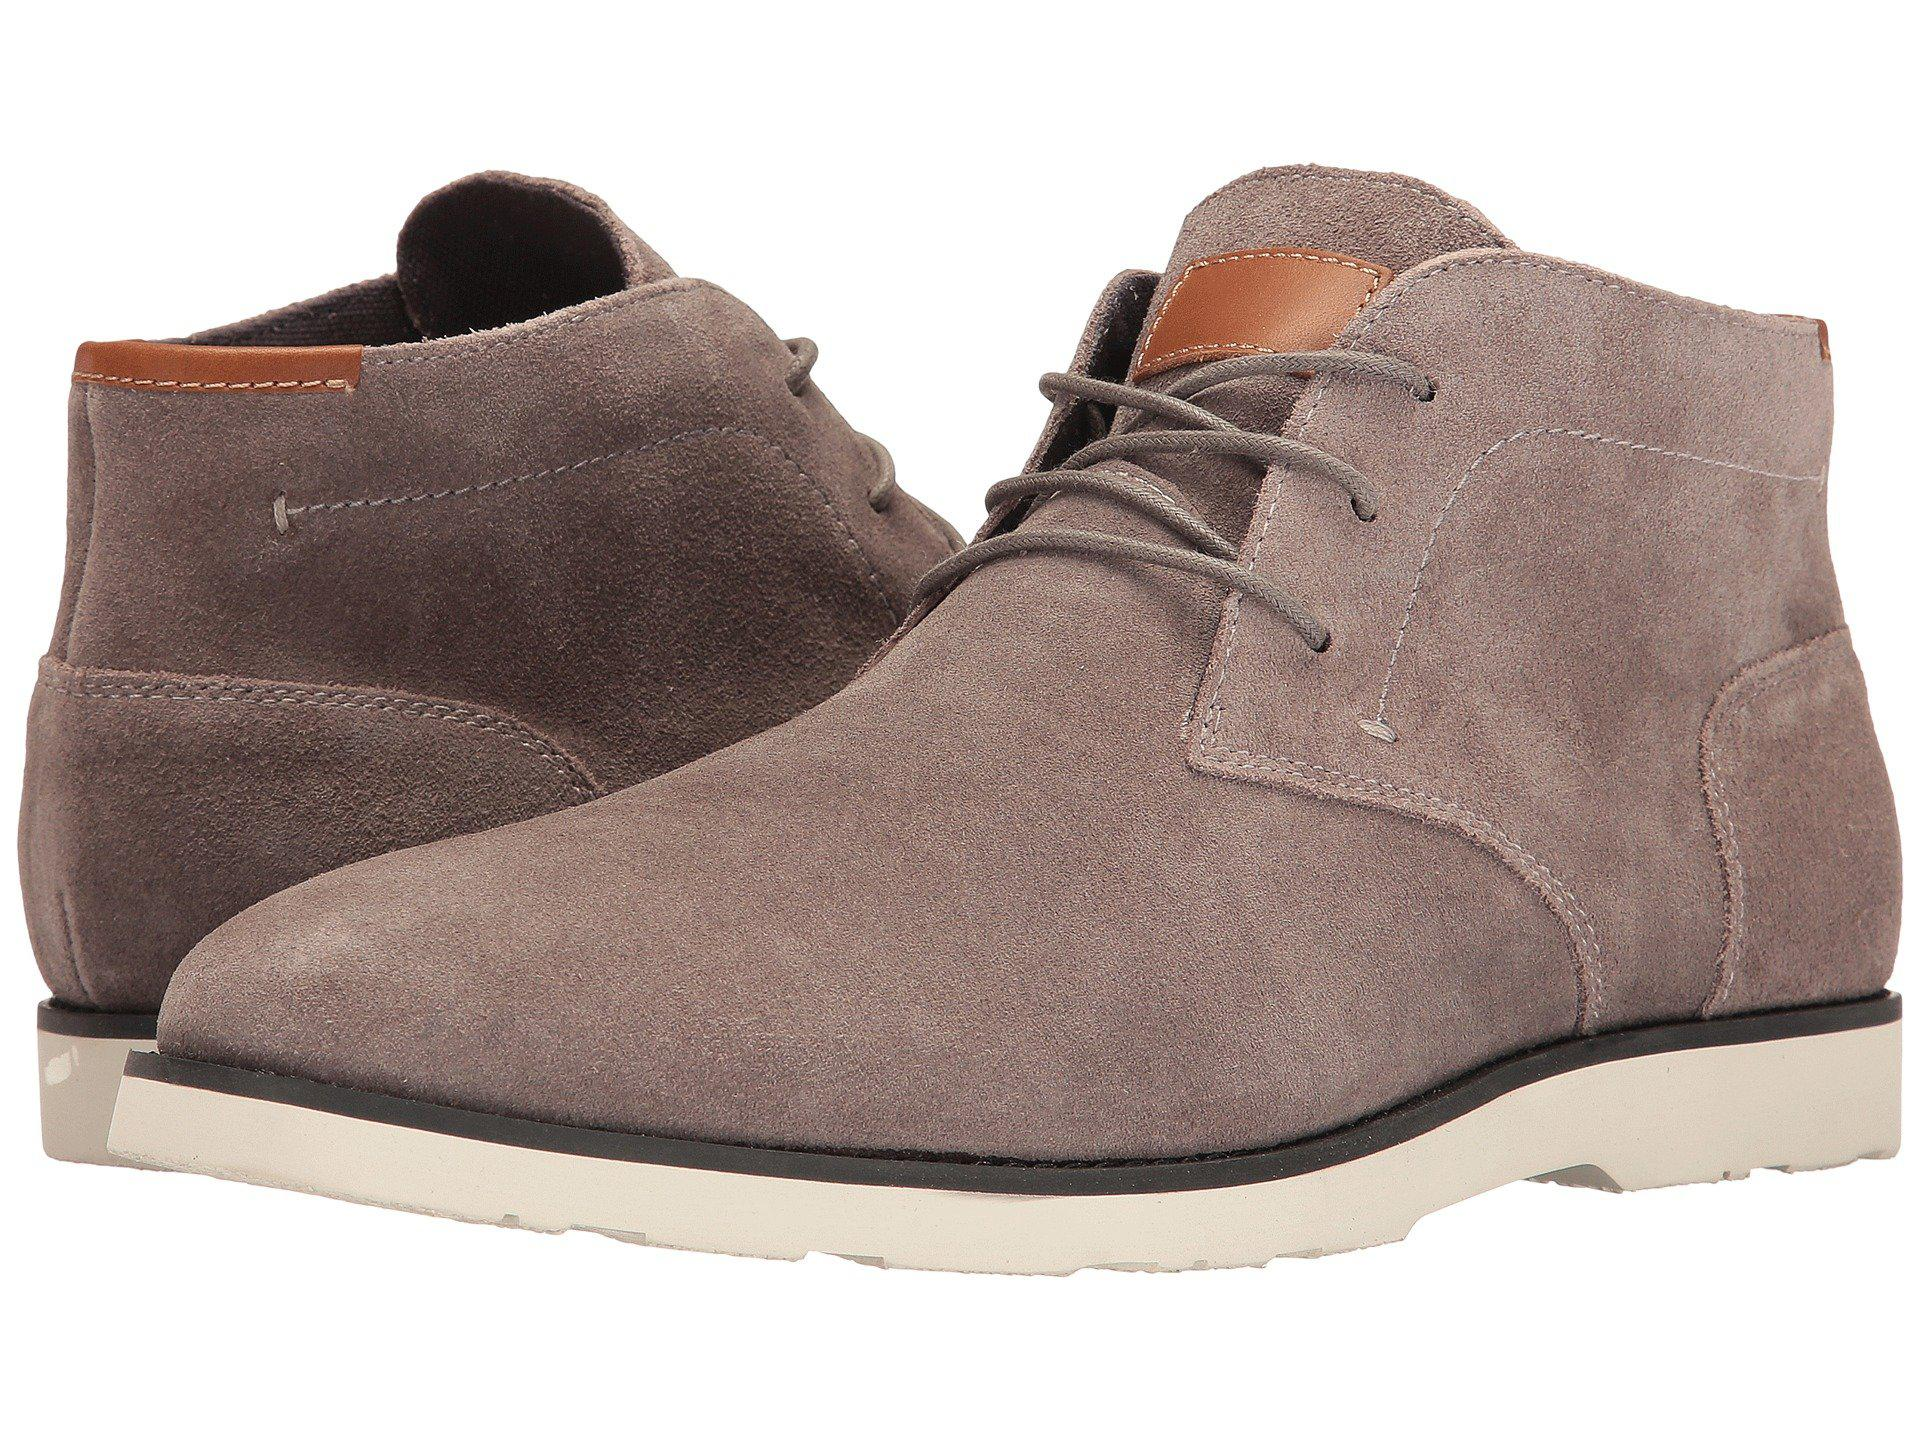 7a0cbe847 Lyst - Dr. Scholls Freewill - Original Collection in Gray for Men